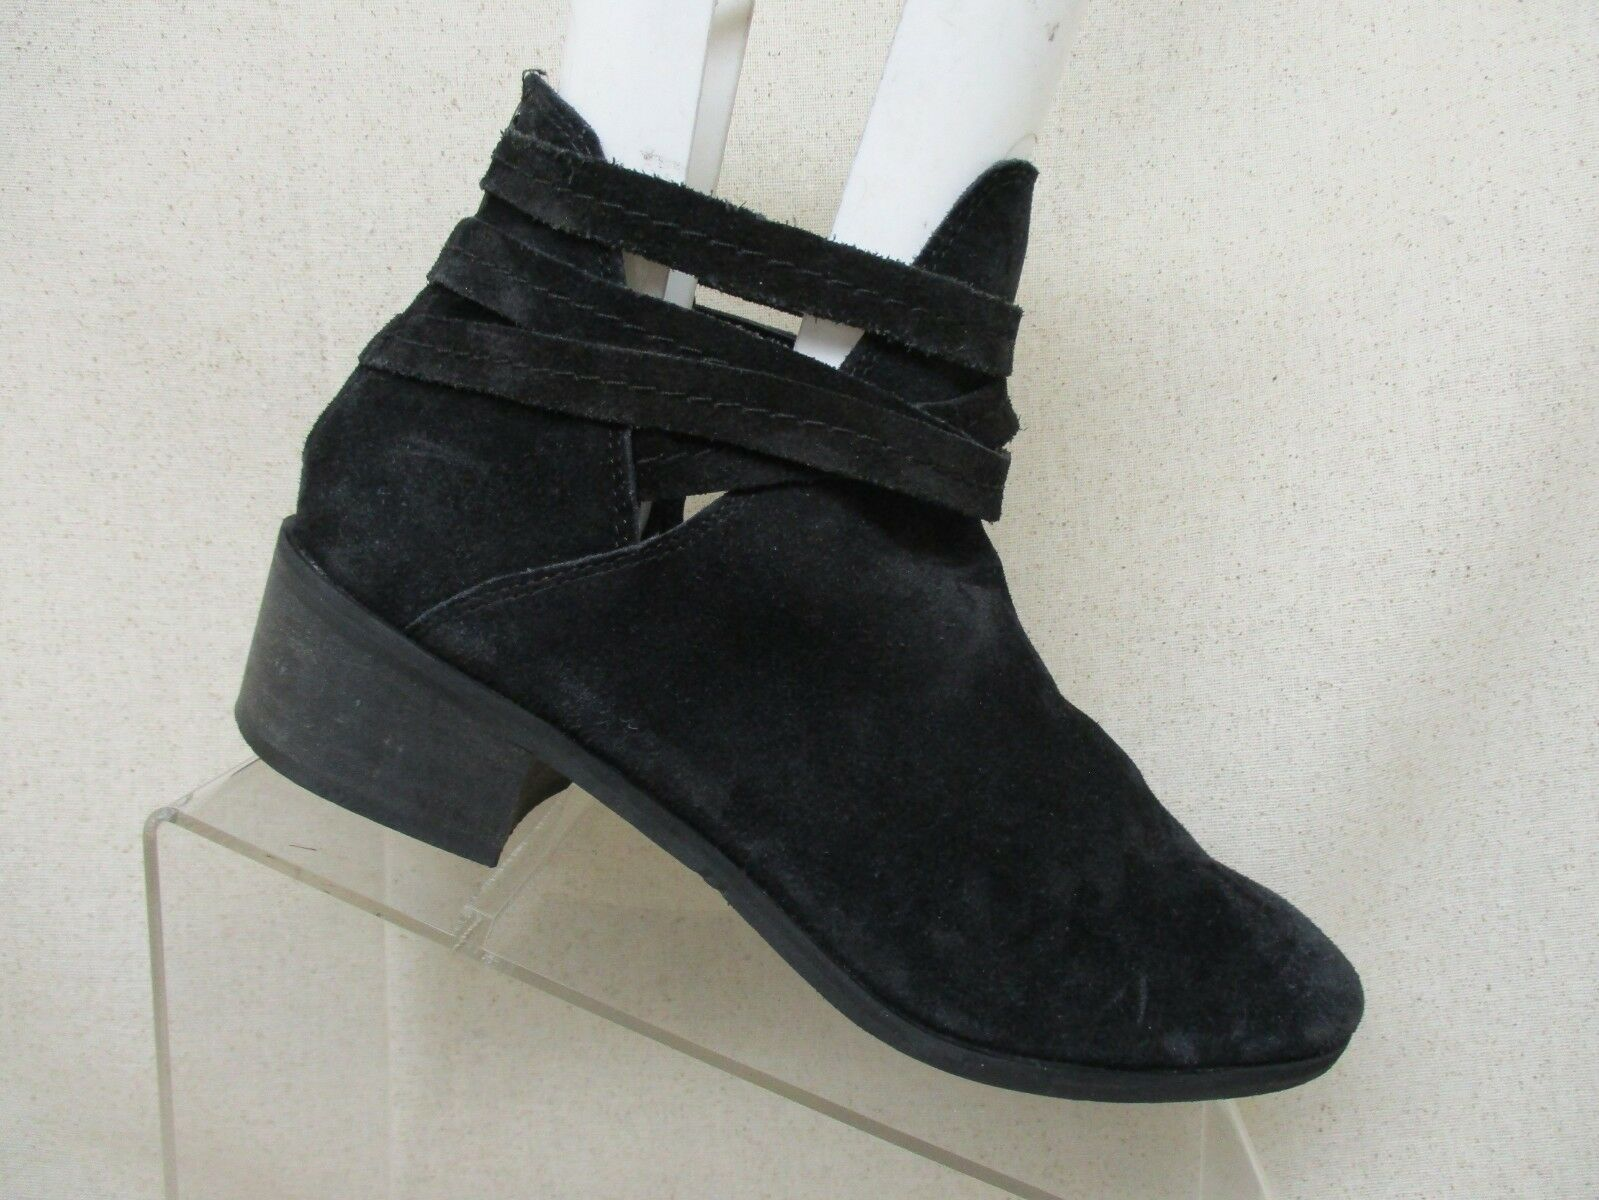 Coconuts by Matisse Black Suede Zip Ankle Fashion Boots Bootie Size 8.5 M